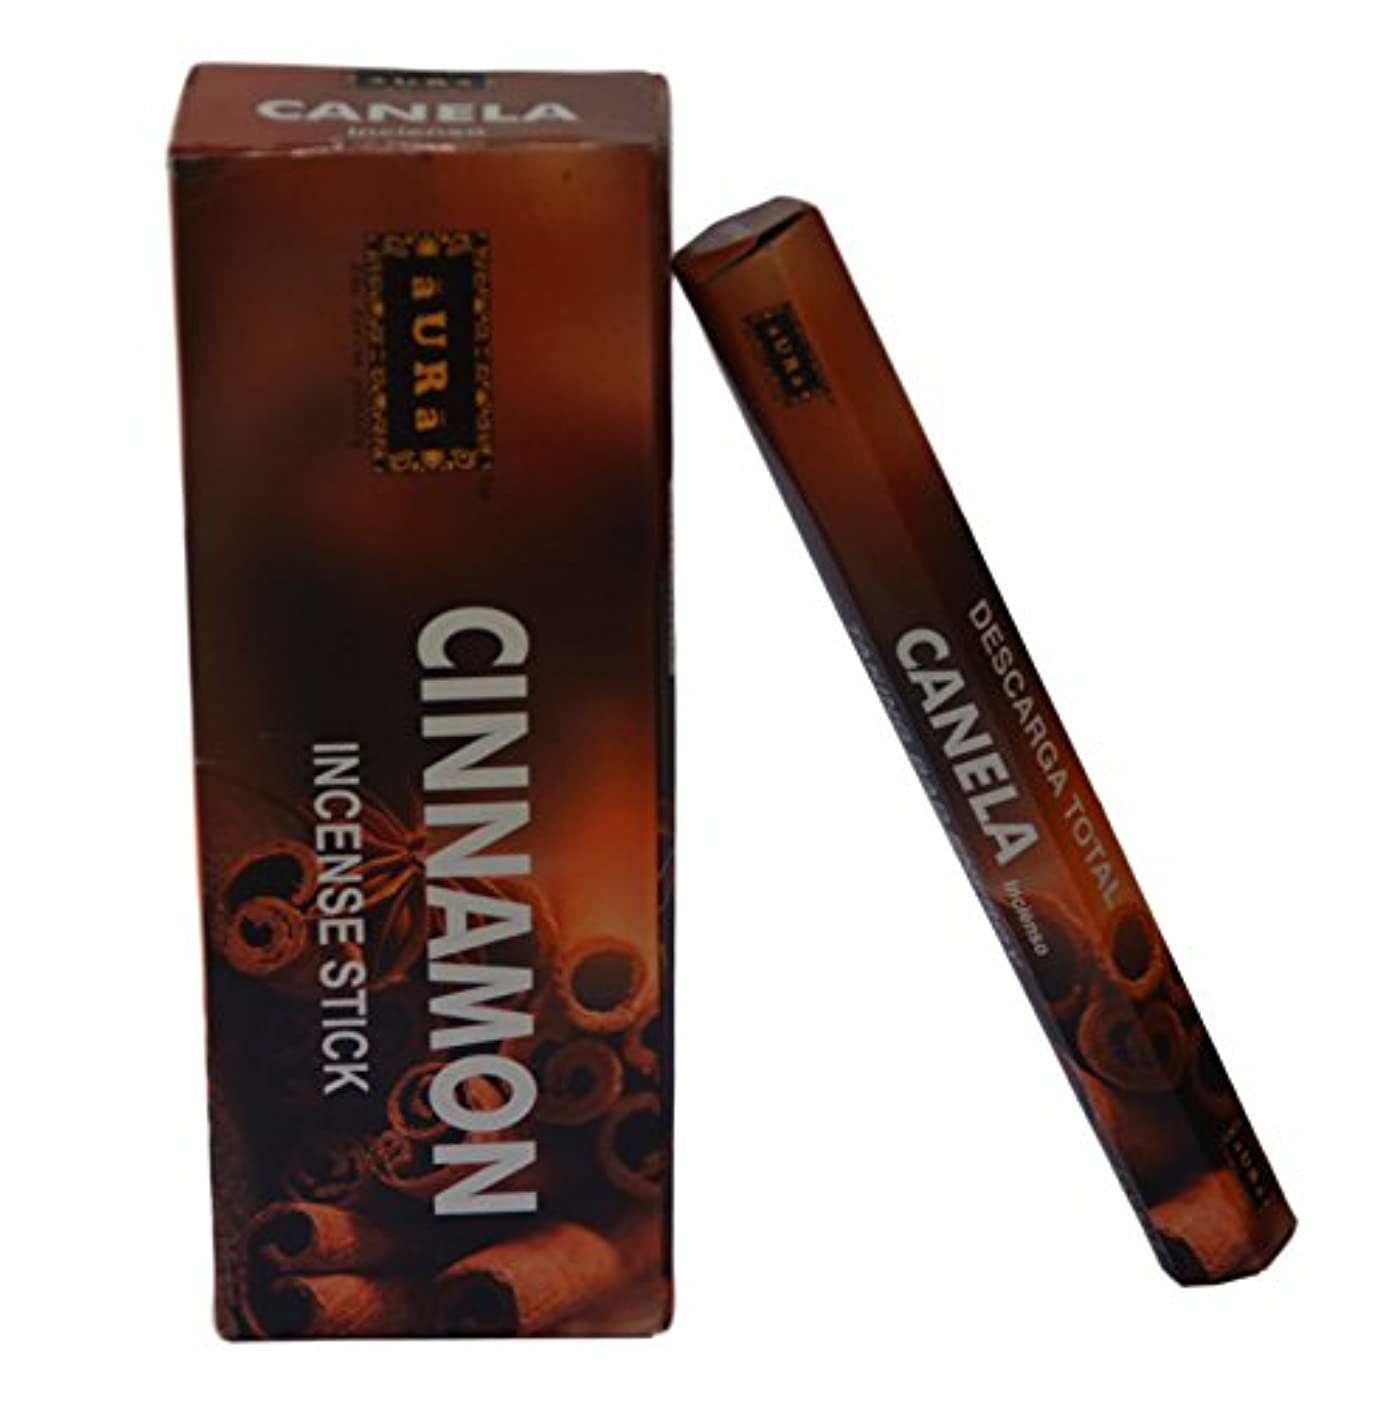 発火する気怠い合理的オーラCinnamon Scented Incense Sticks、プレミアム天然Incense Sticks、六角packing- 120 Sticks